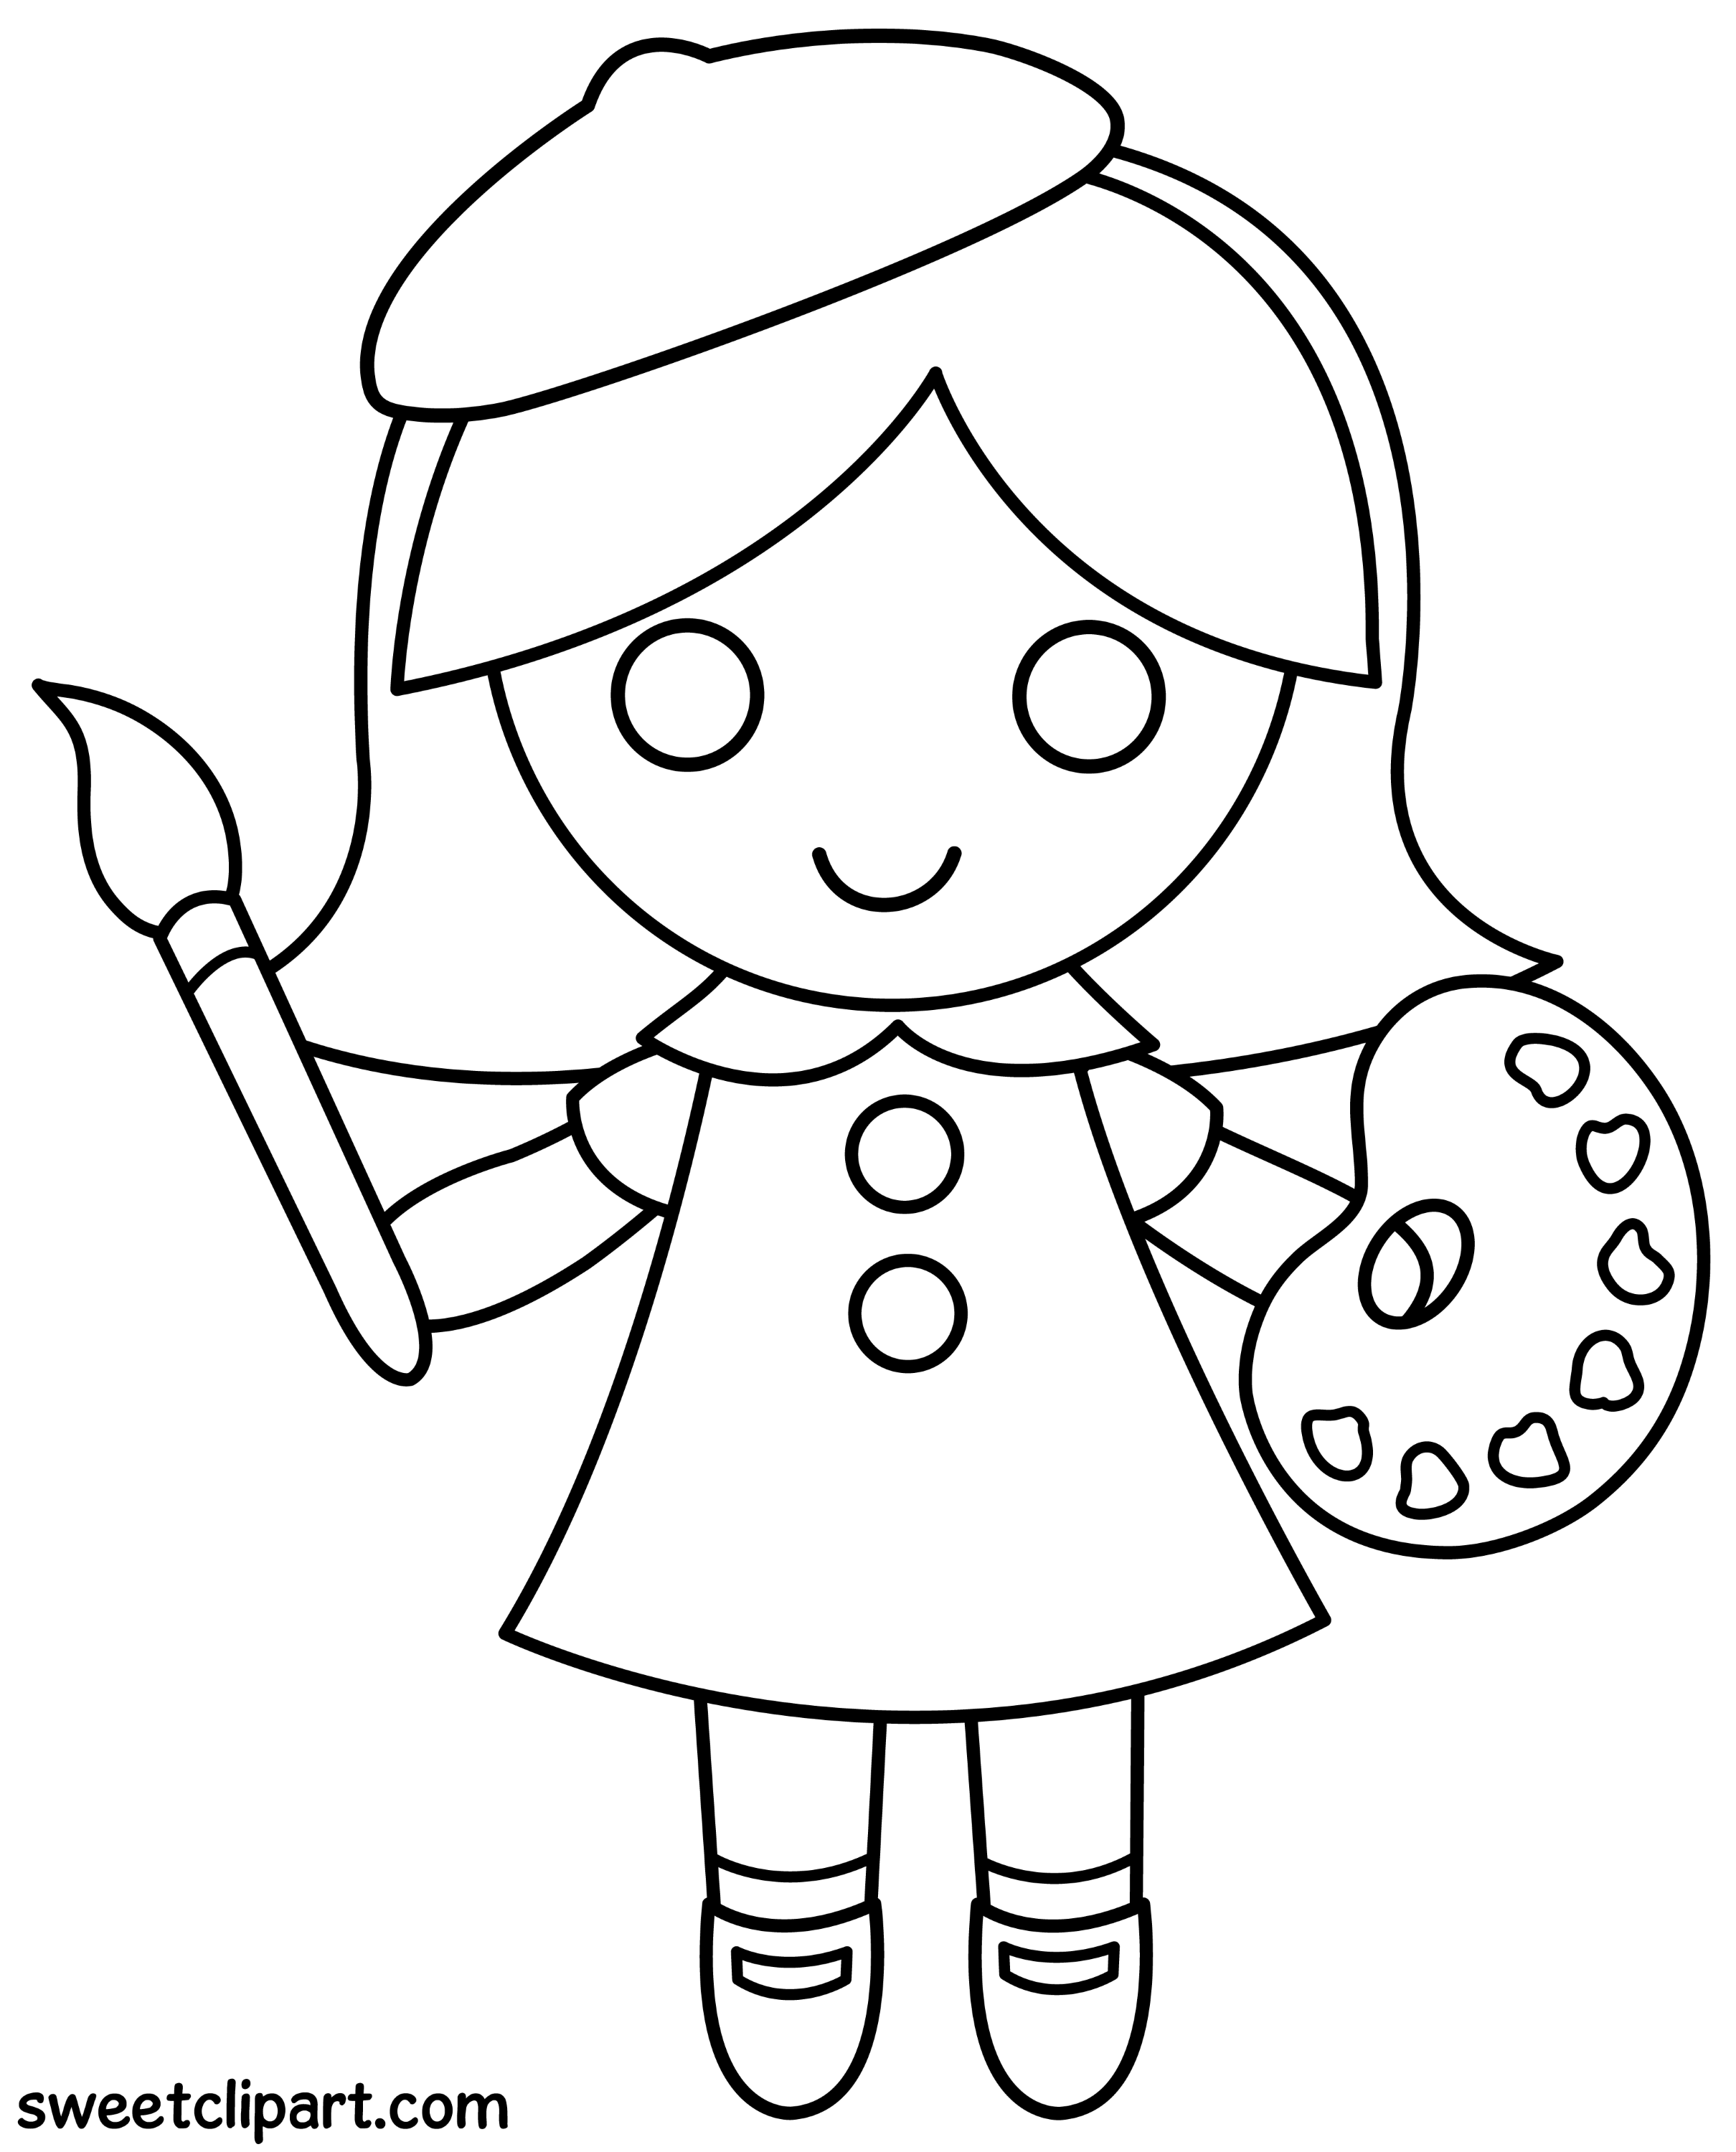 colouring picture of girl little girl coloring pages getcoloringpagescom girl picture colouring of